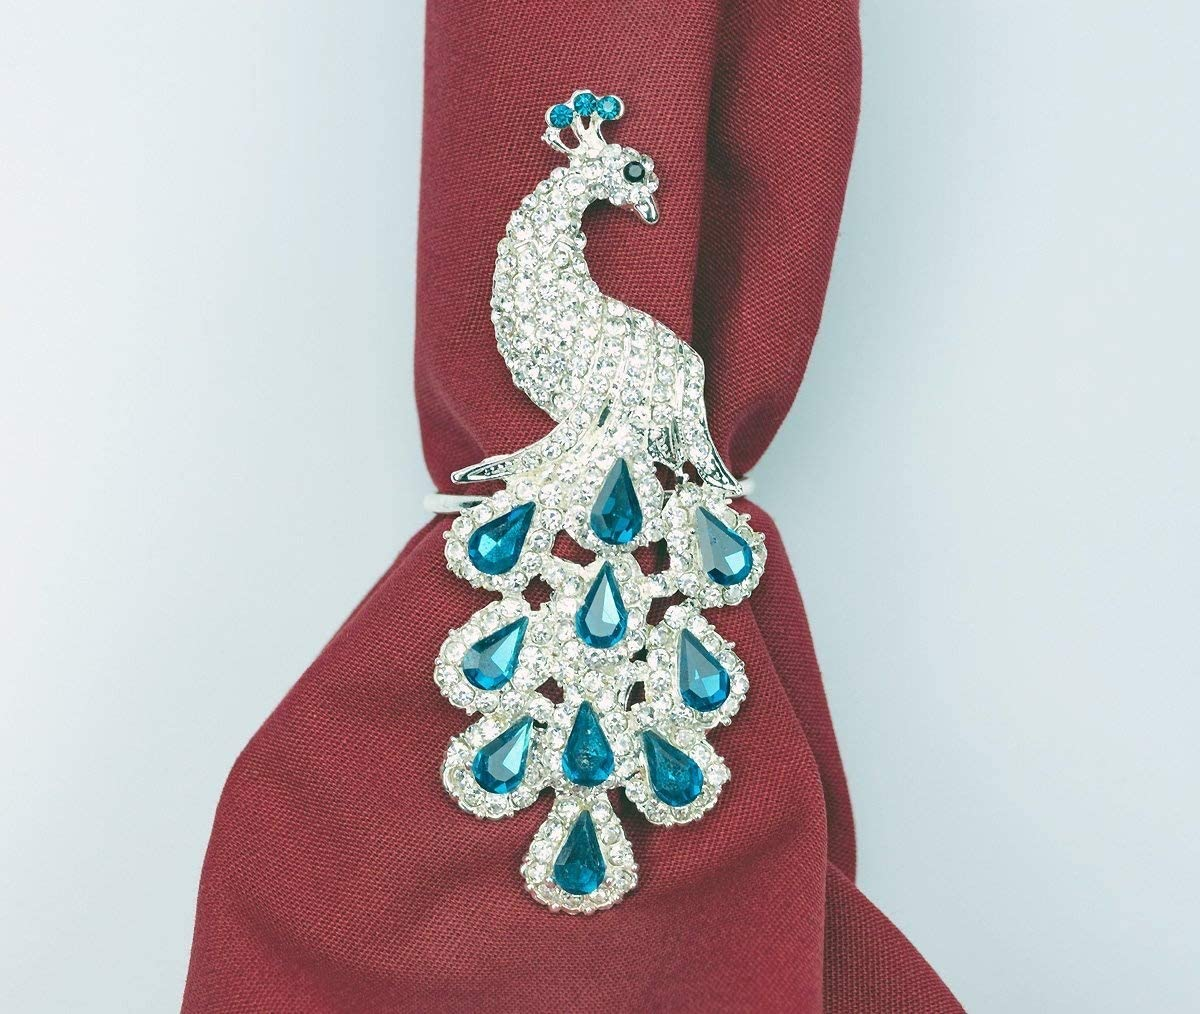 Yacanna Peacock Napkin Rings for Christmas, Holidays, Dinners, Parties - Set of 4 Napkin Holders